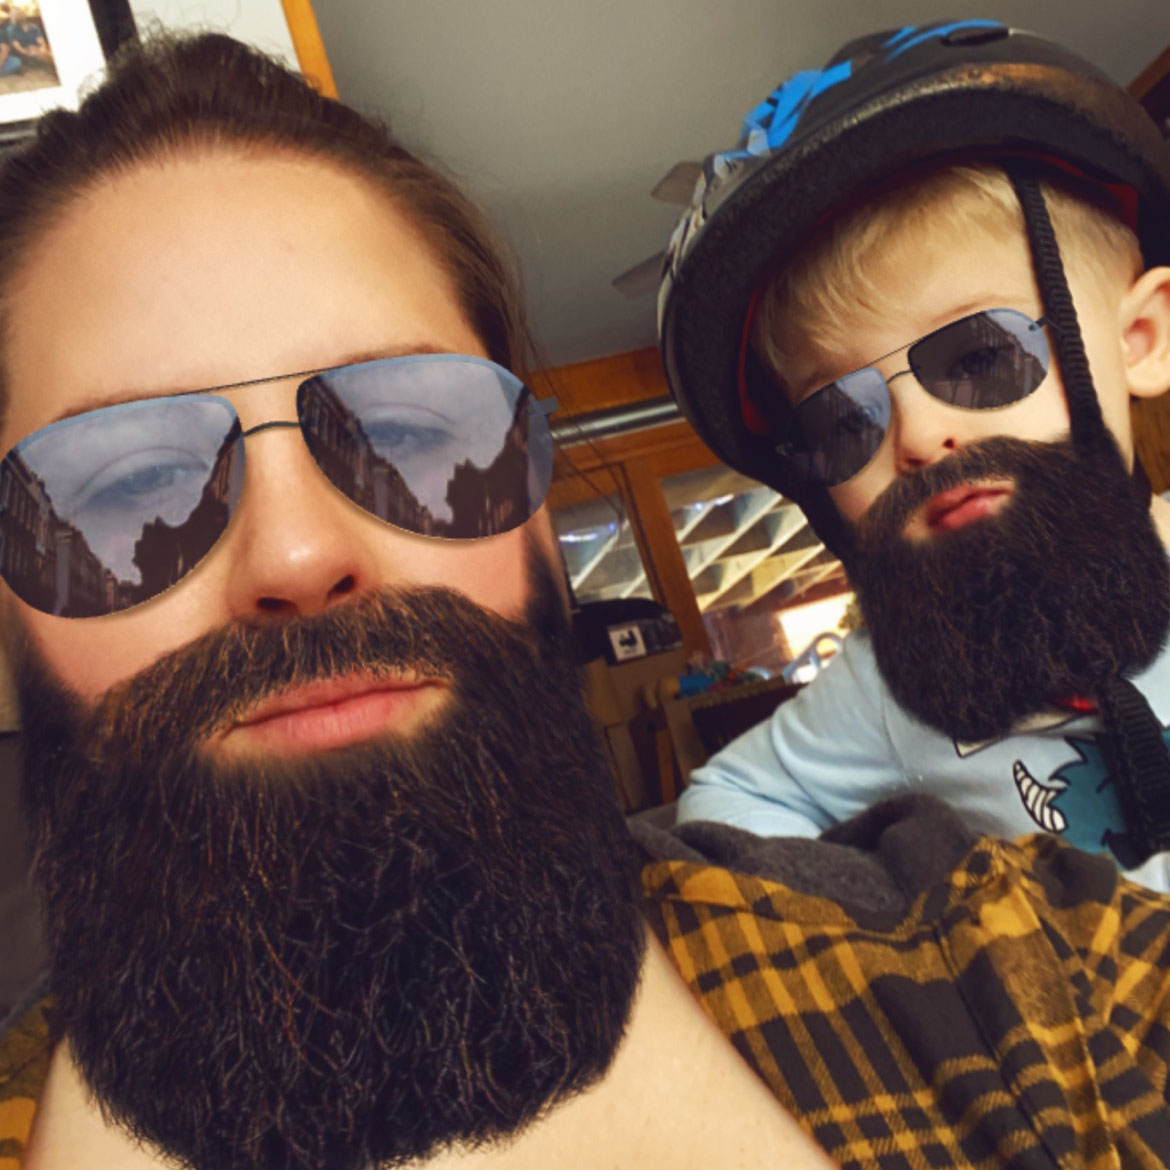 Gabe and Brayden, with beard